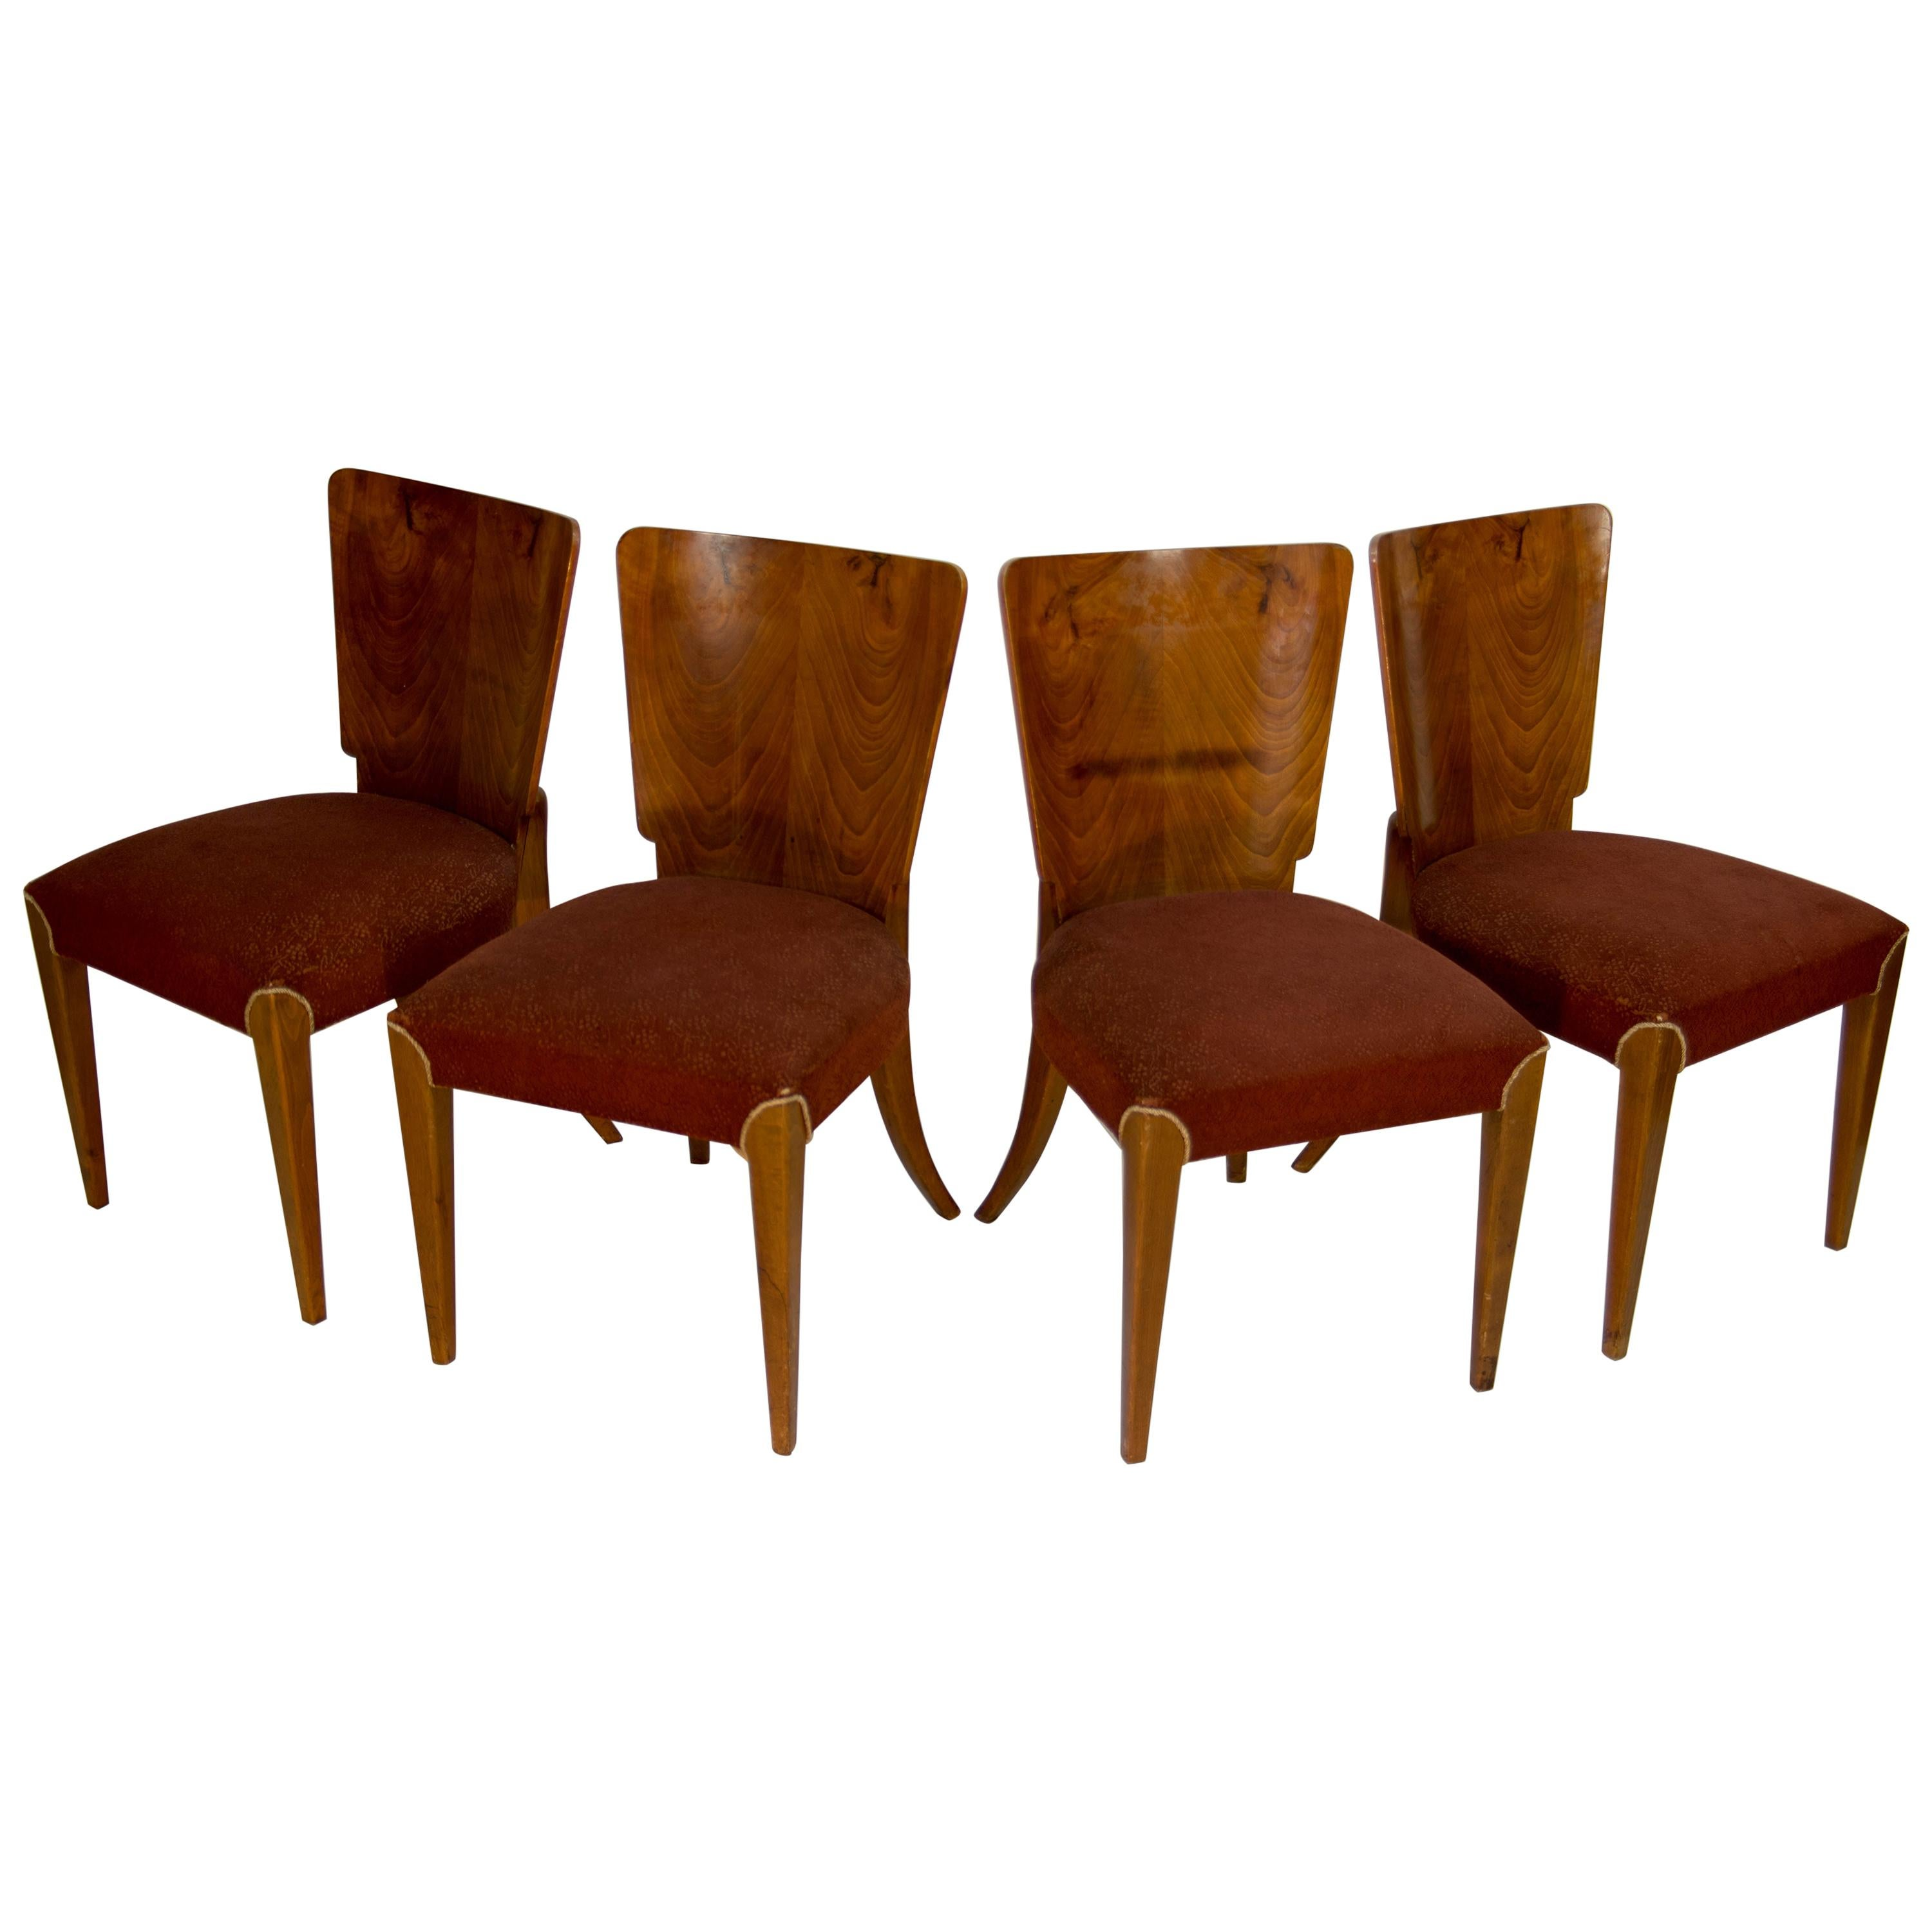 Art Deco Dining Chairs H-214 by Jindrich Halabala for UP Závody, Set of 4